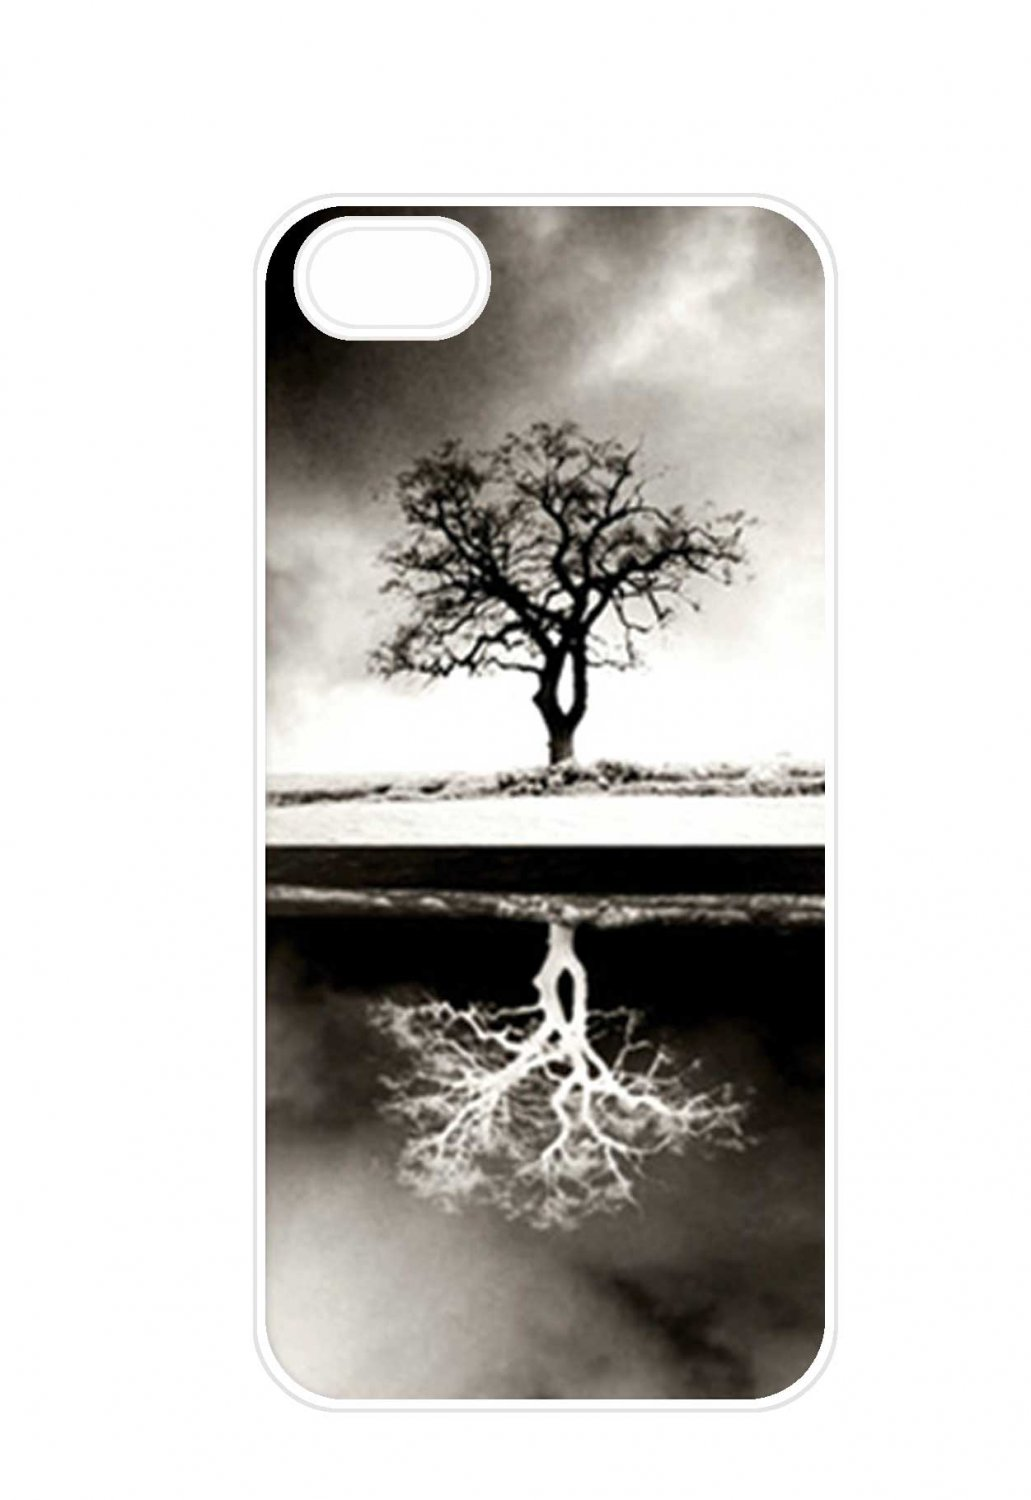 Reflection of the tree Aluminium Plastic Hard Back Case for iPhone 4/4S